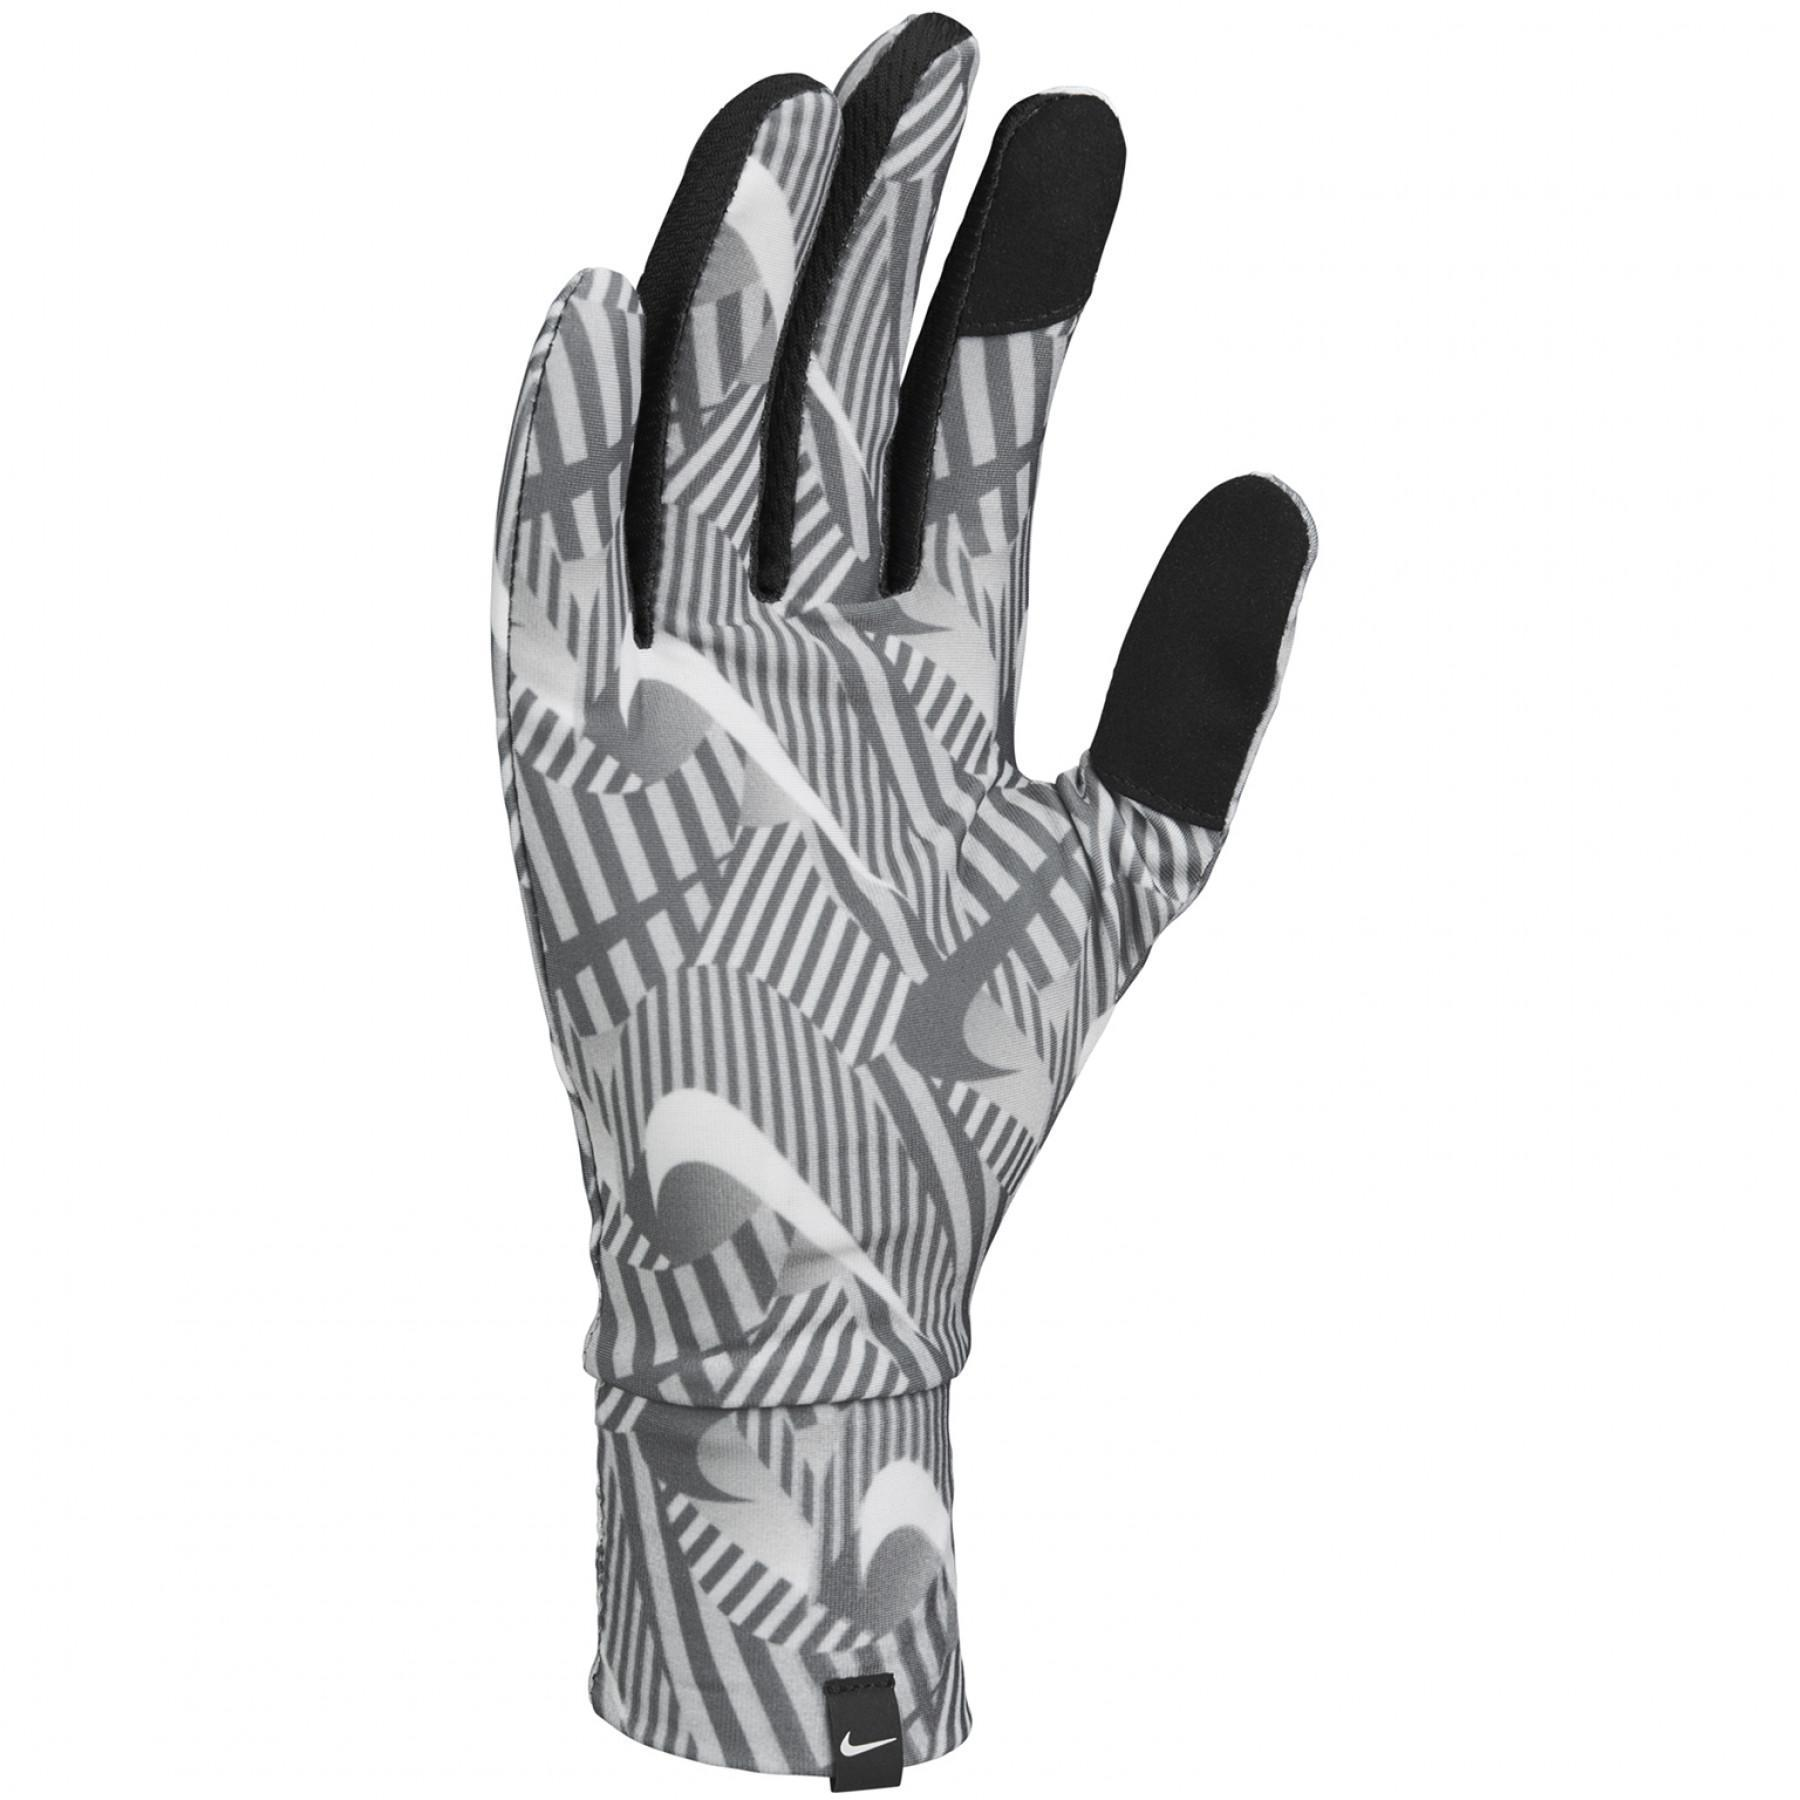 Women's Nike lightw tech run gloves